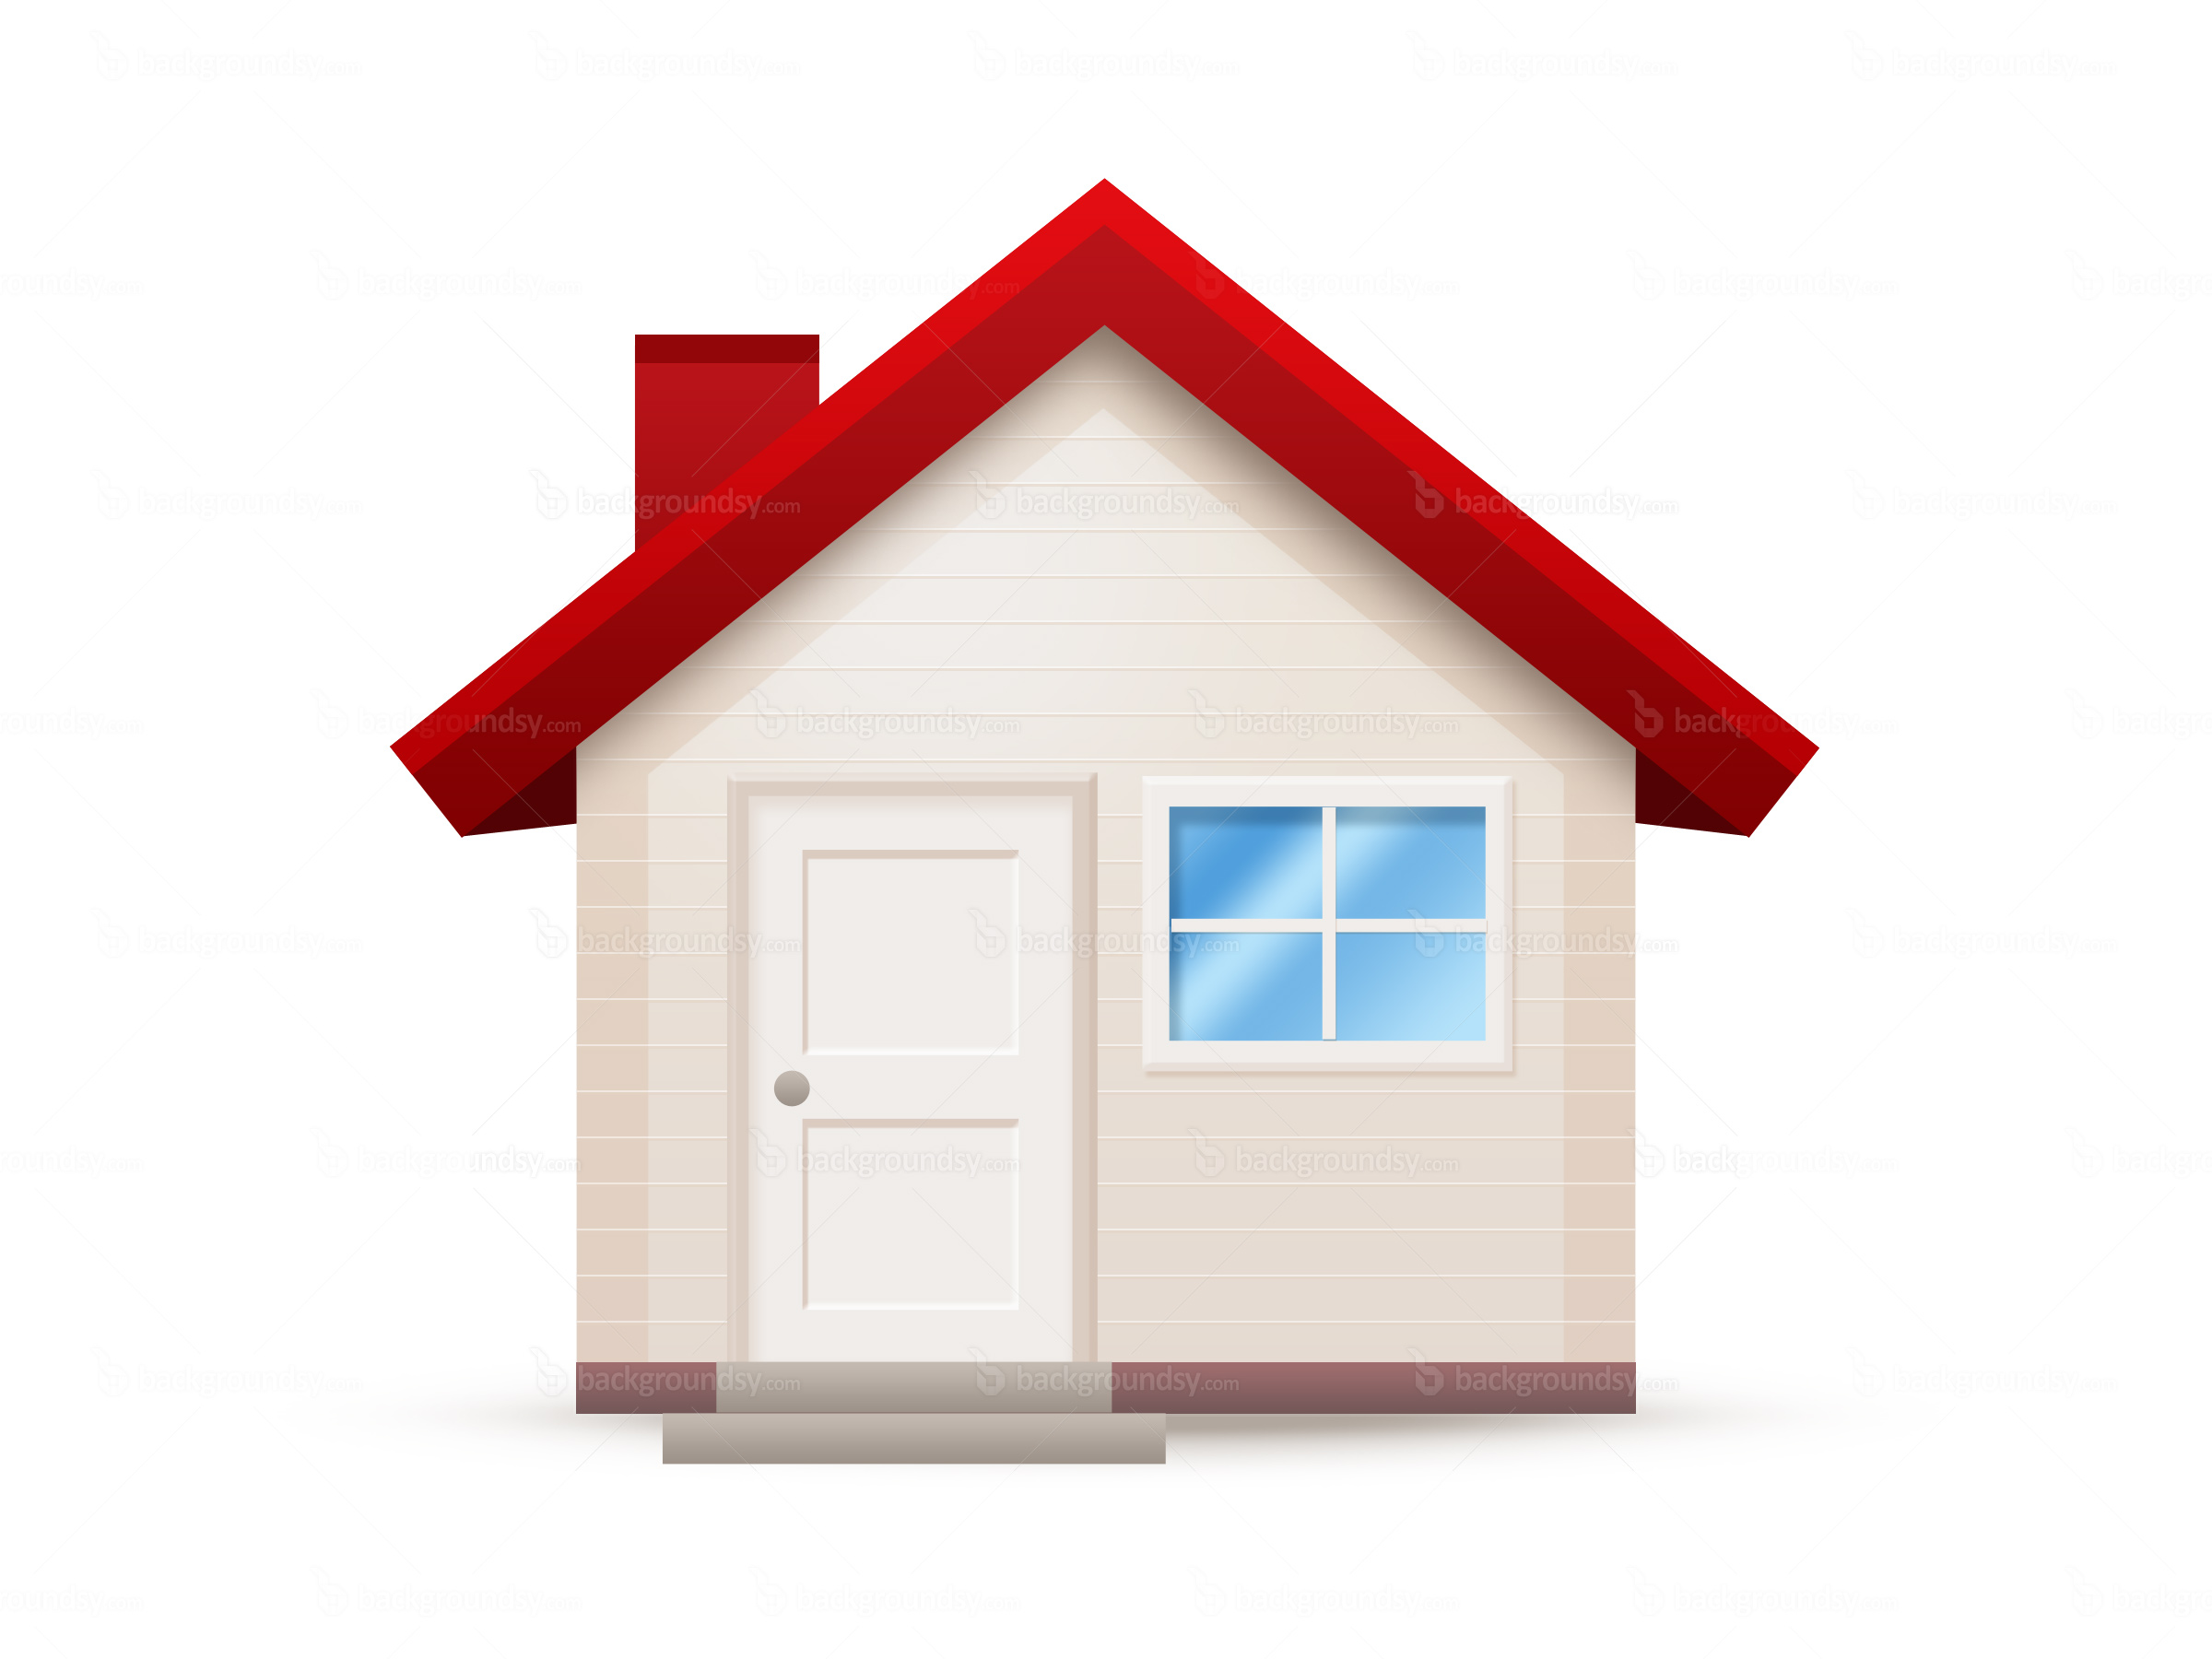 Home icon images clipart best - Photo best home ...